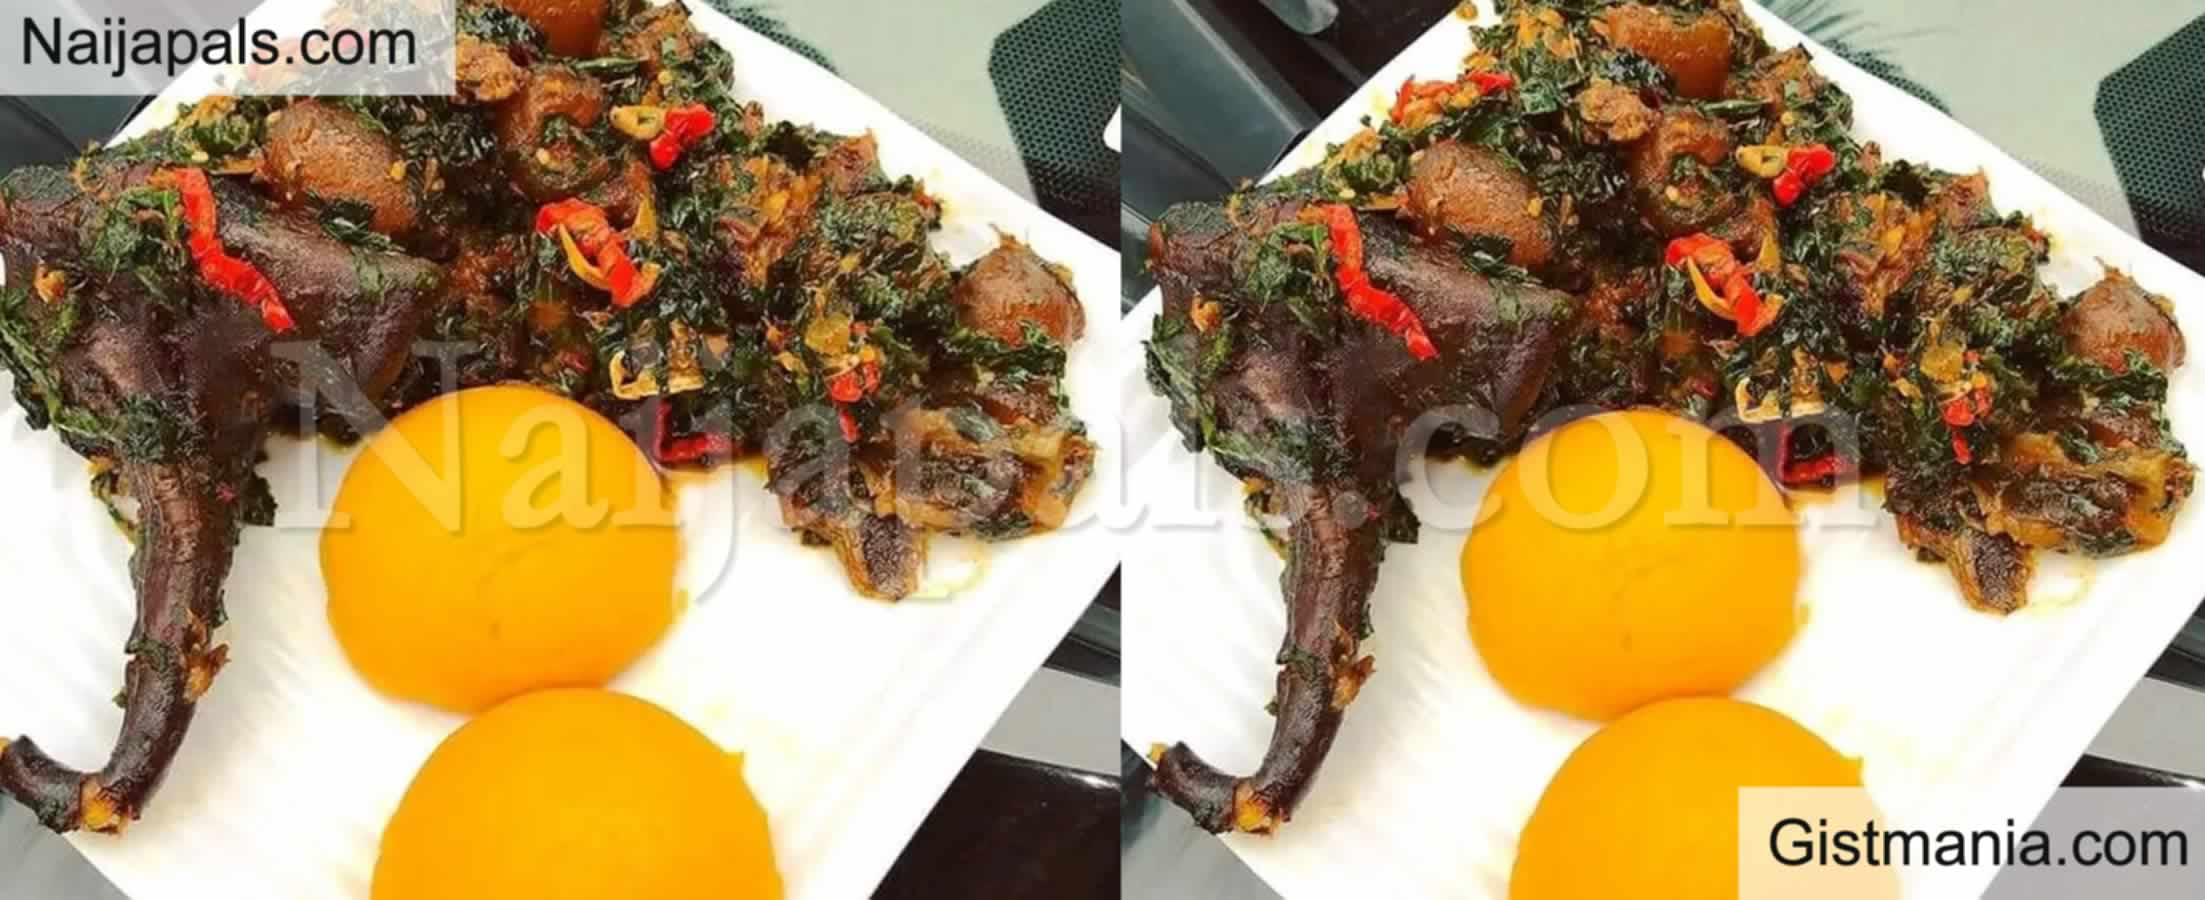 <img alt='.' class='lazyload' data-src='https://img.gistmania.com/emot/grin.gif' /> <b>Read Hilarious Reactions To Photo Of Eba And Soup That Cost N44k Per Plate</b>